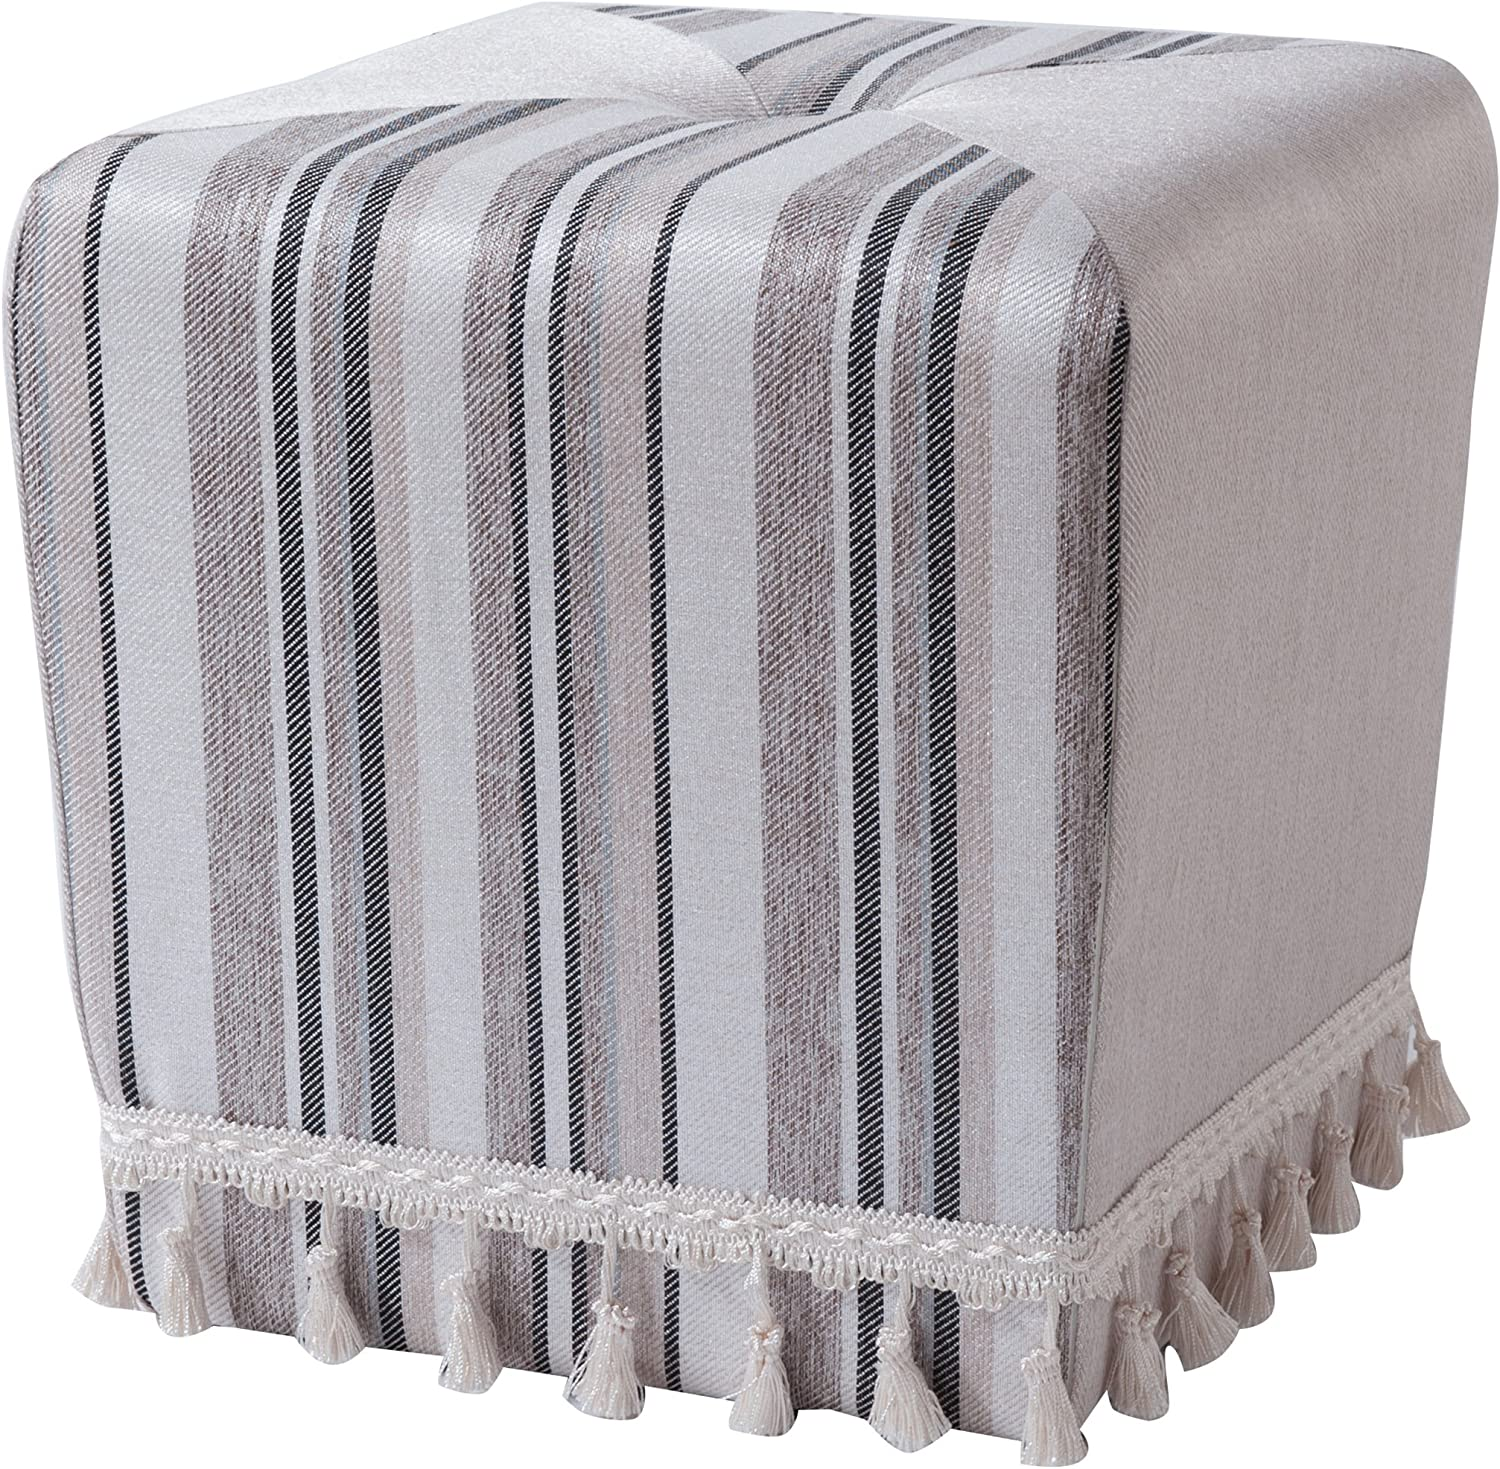 Jennifer Taylor Home Colleen Fringe Square Accent Ottoman, Grey